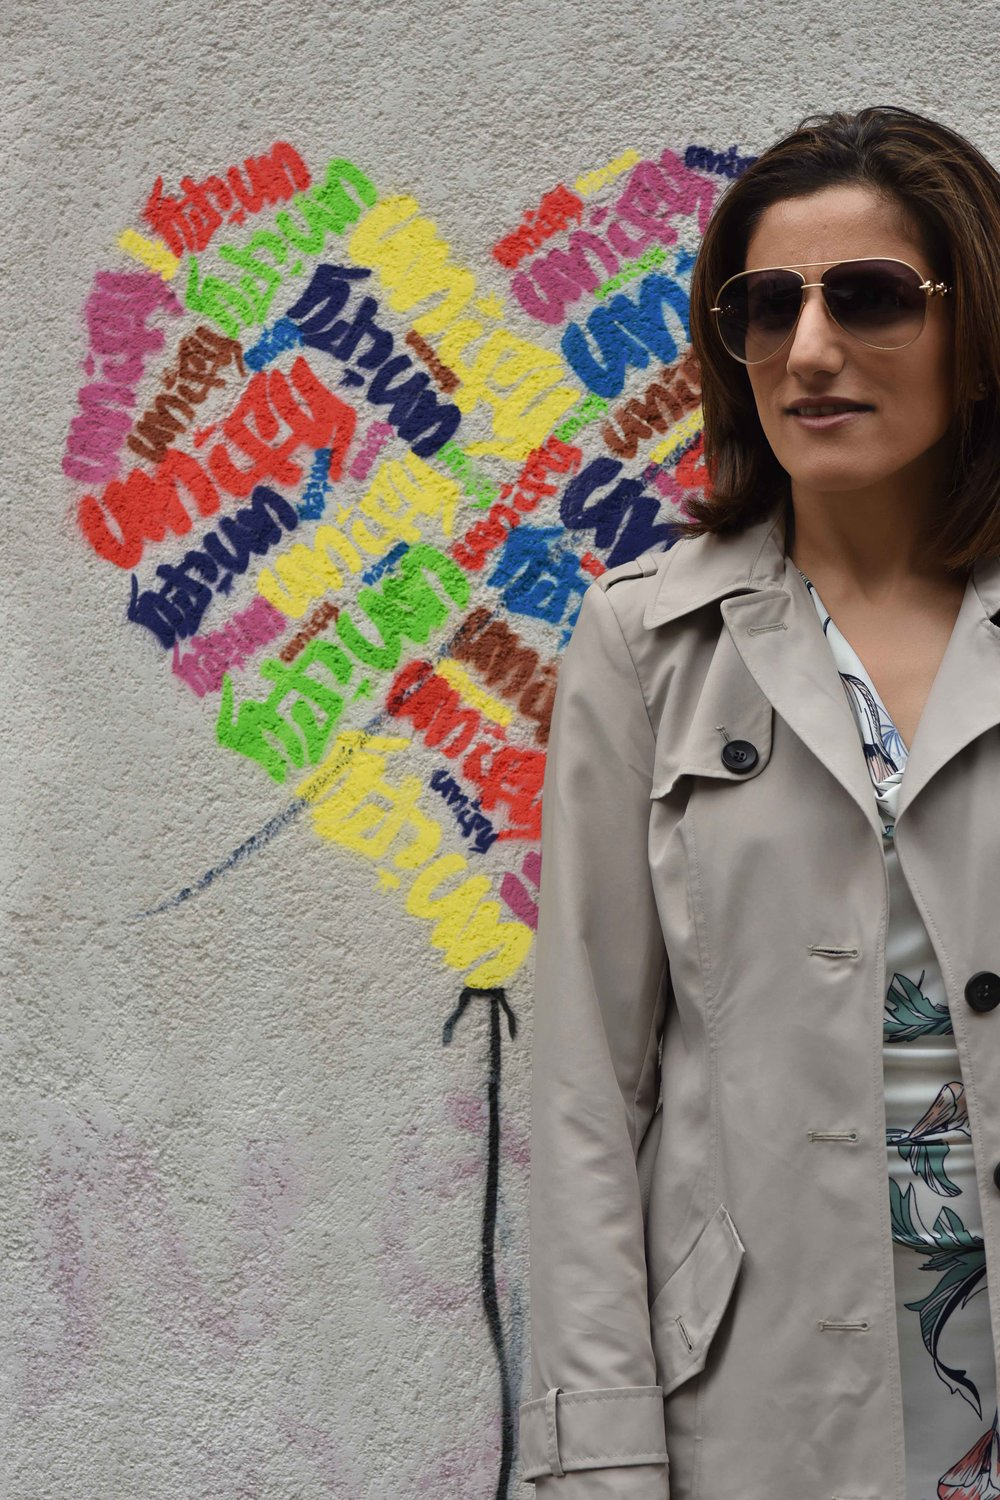 Marks and Spencer shift dress, Marks and Spencer trench, Gucci sunglasses, street fashion, street art, Shoreditch, London, U.K. Photo: Nina Shaw, Image©sourcingstyle.com